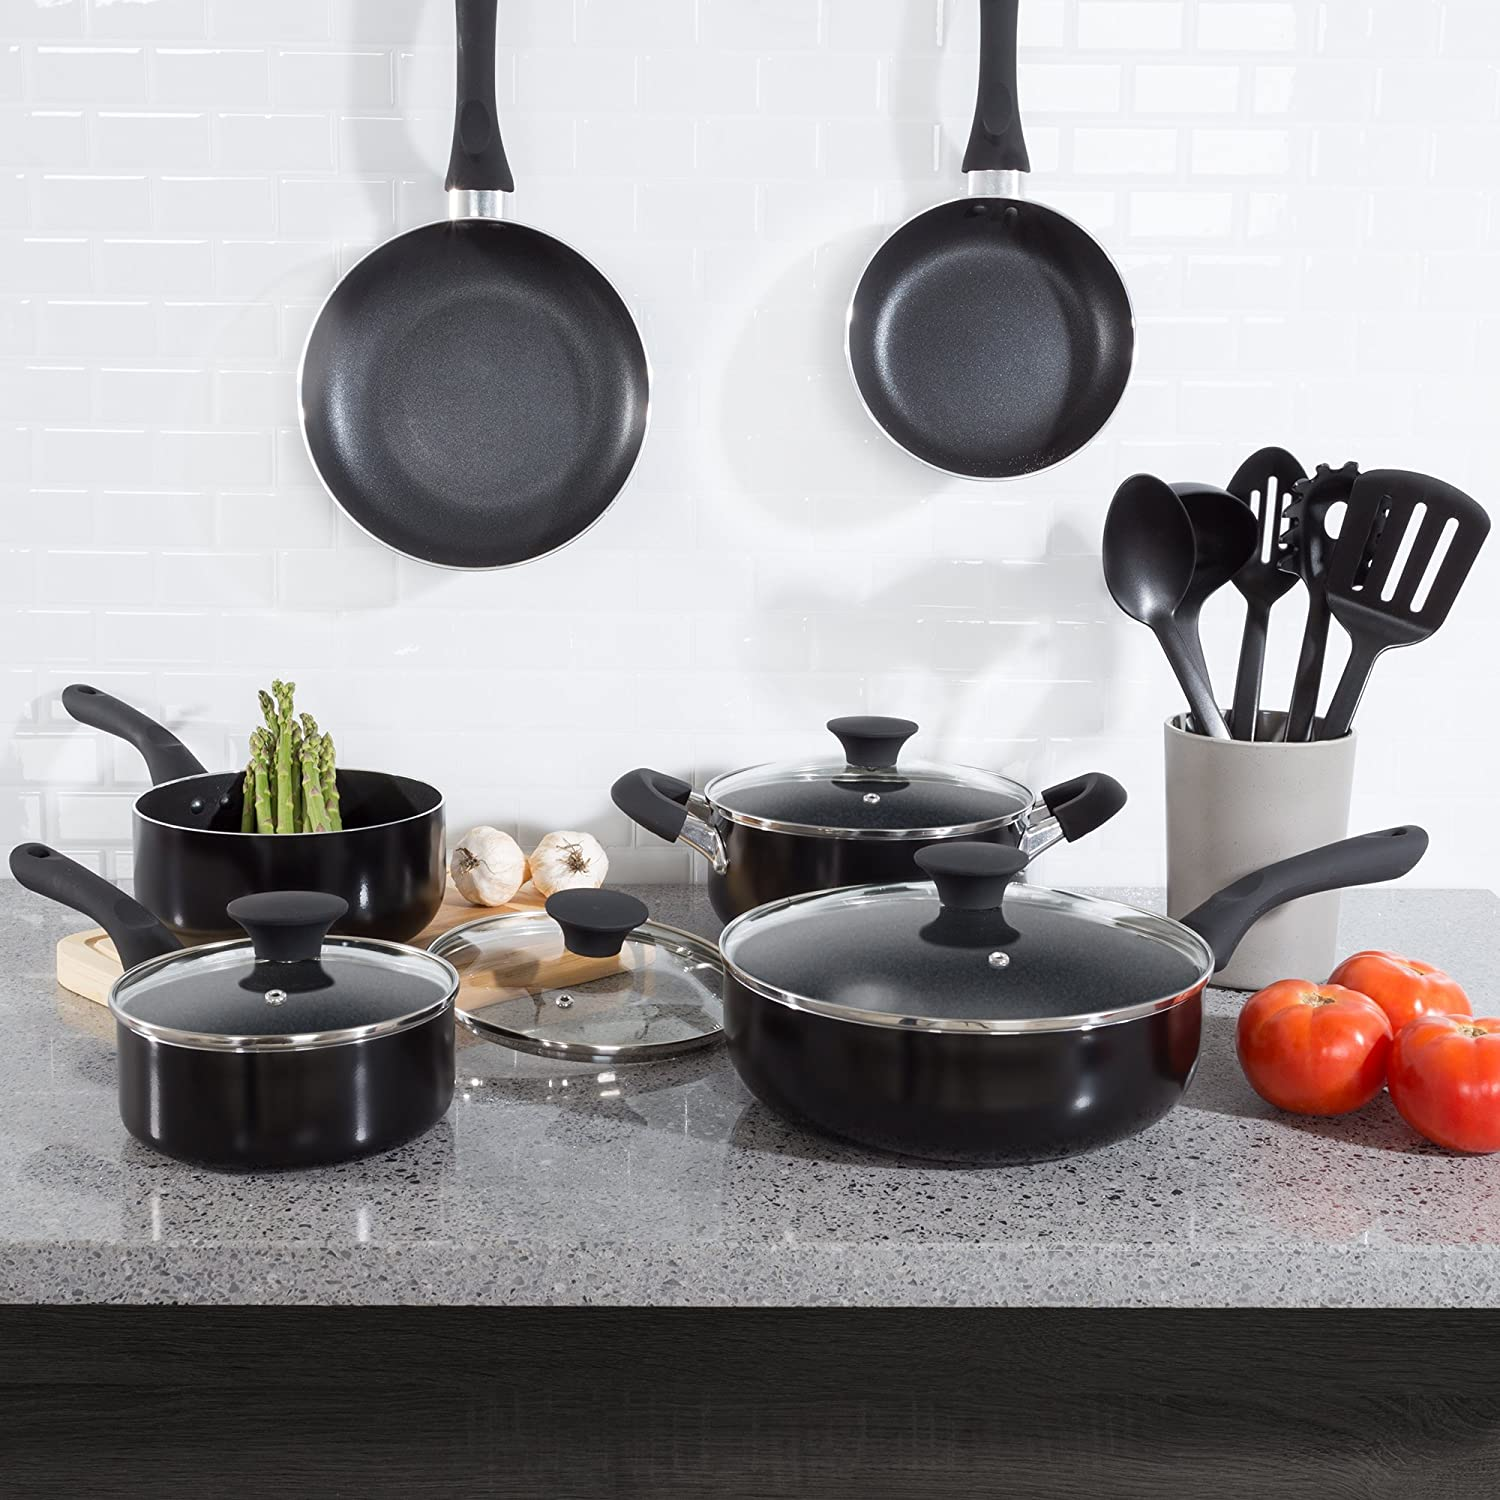 15PC Cookware Set Long Lasting Nonstick, Tempered Glass lids, Dishwasher Safe Allumi-shield with Induction Ready Bottom by Classic Cuisine - Black